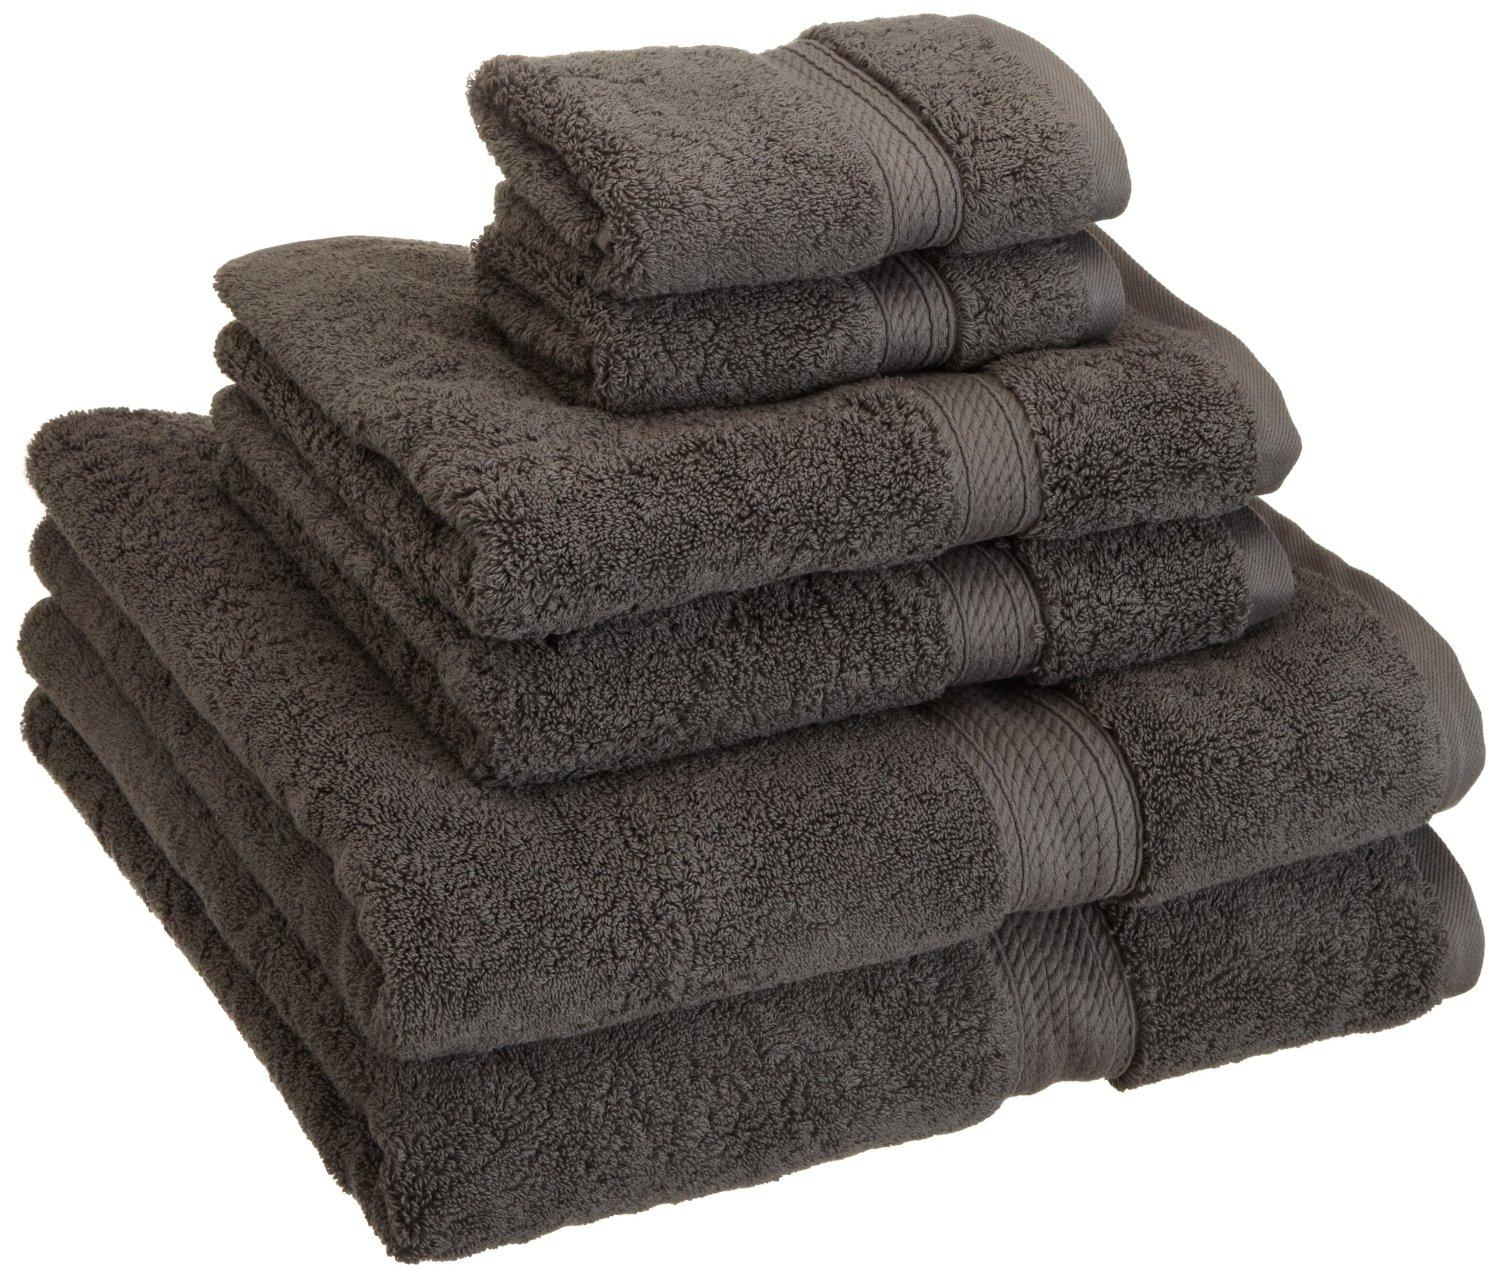 Superior 900 Gram Egyptian Cotton 6-Piece Towel Set, Charcoal